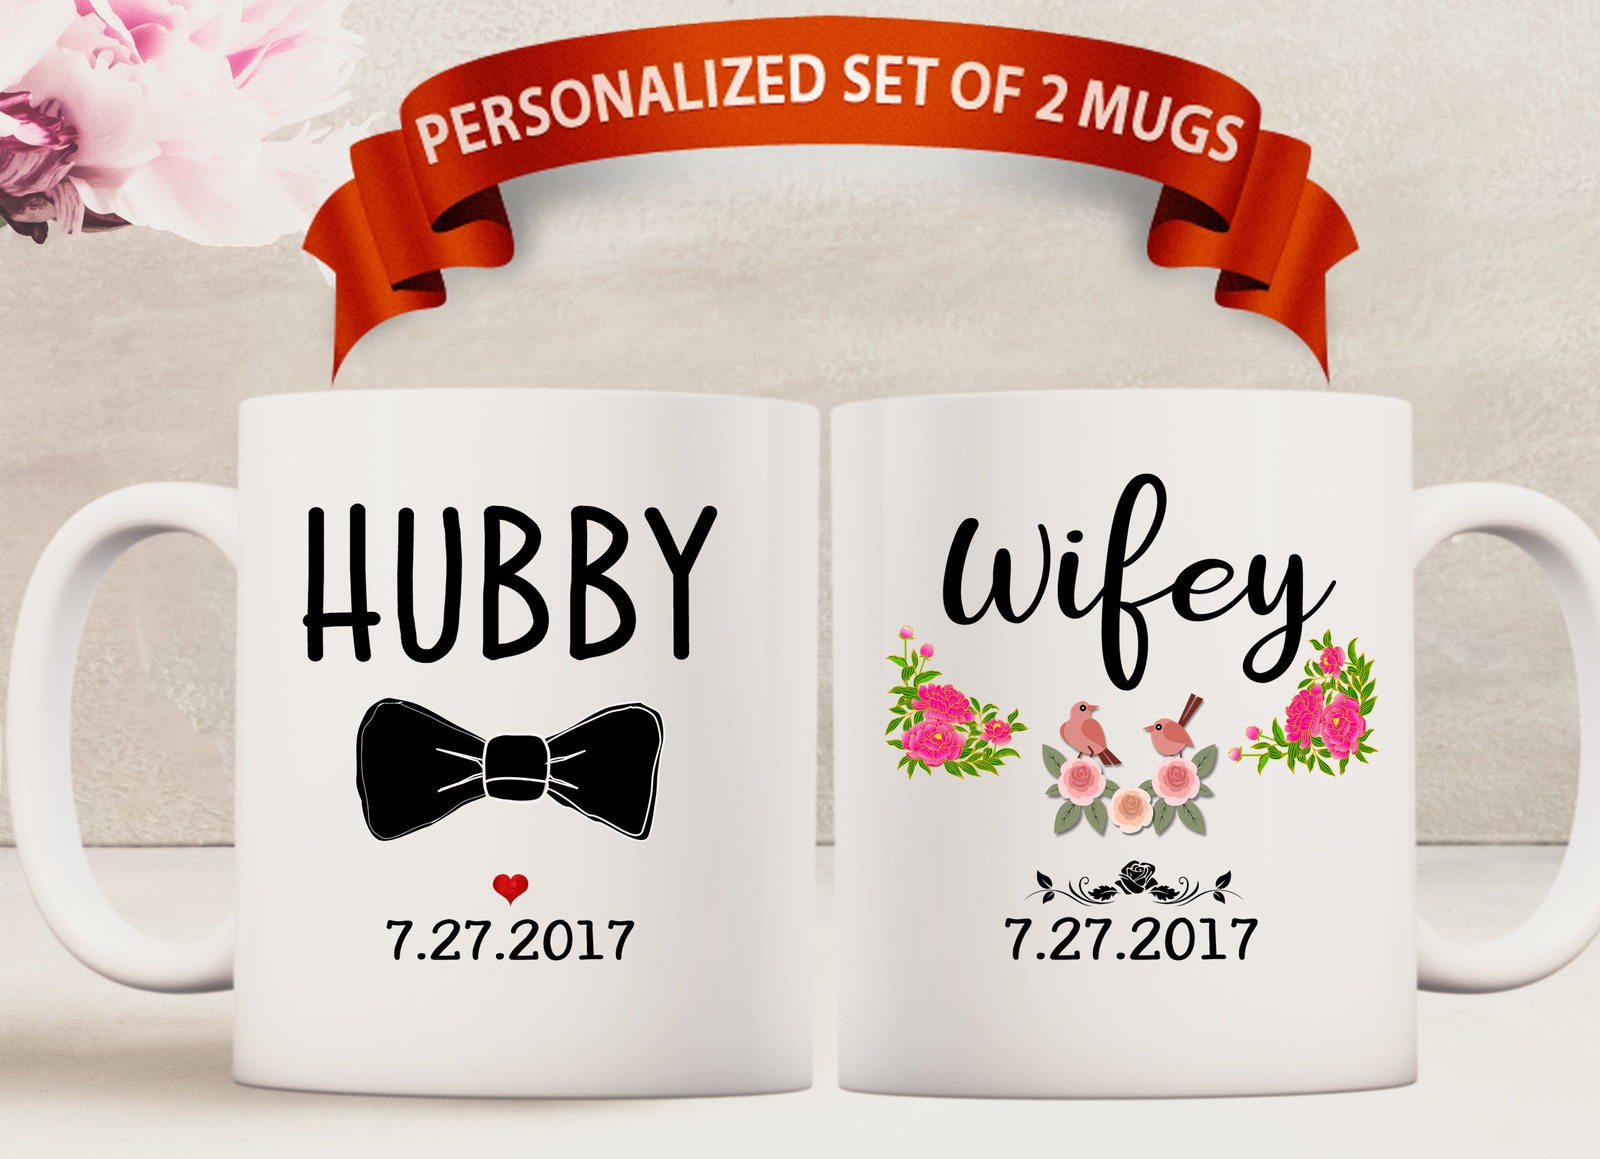 Personalized Custom Hubby or Wifey Sublimation Mug Mug Hubby Wifey Mugs Coffee Sublimation Mug